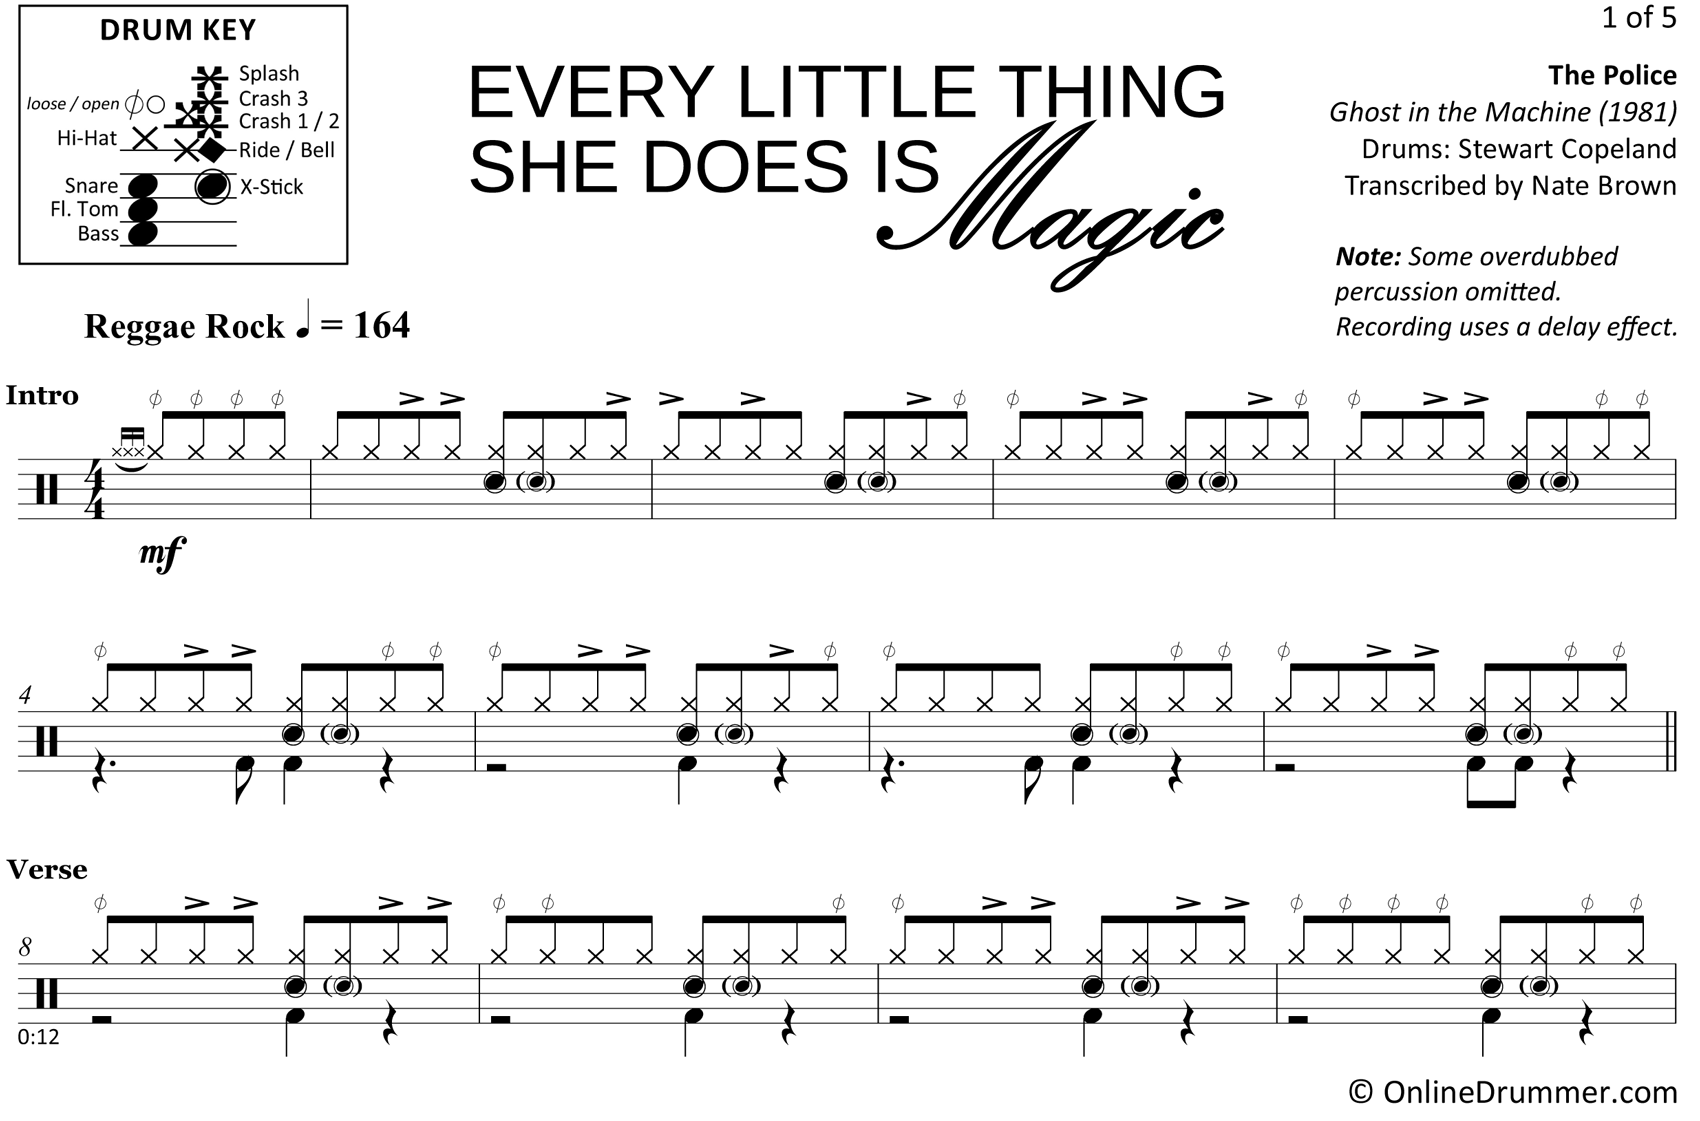 Every Little Thing She Does is Magic - The Police - Drum Sheet Music